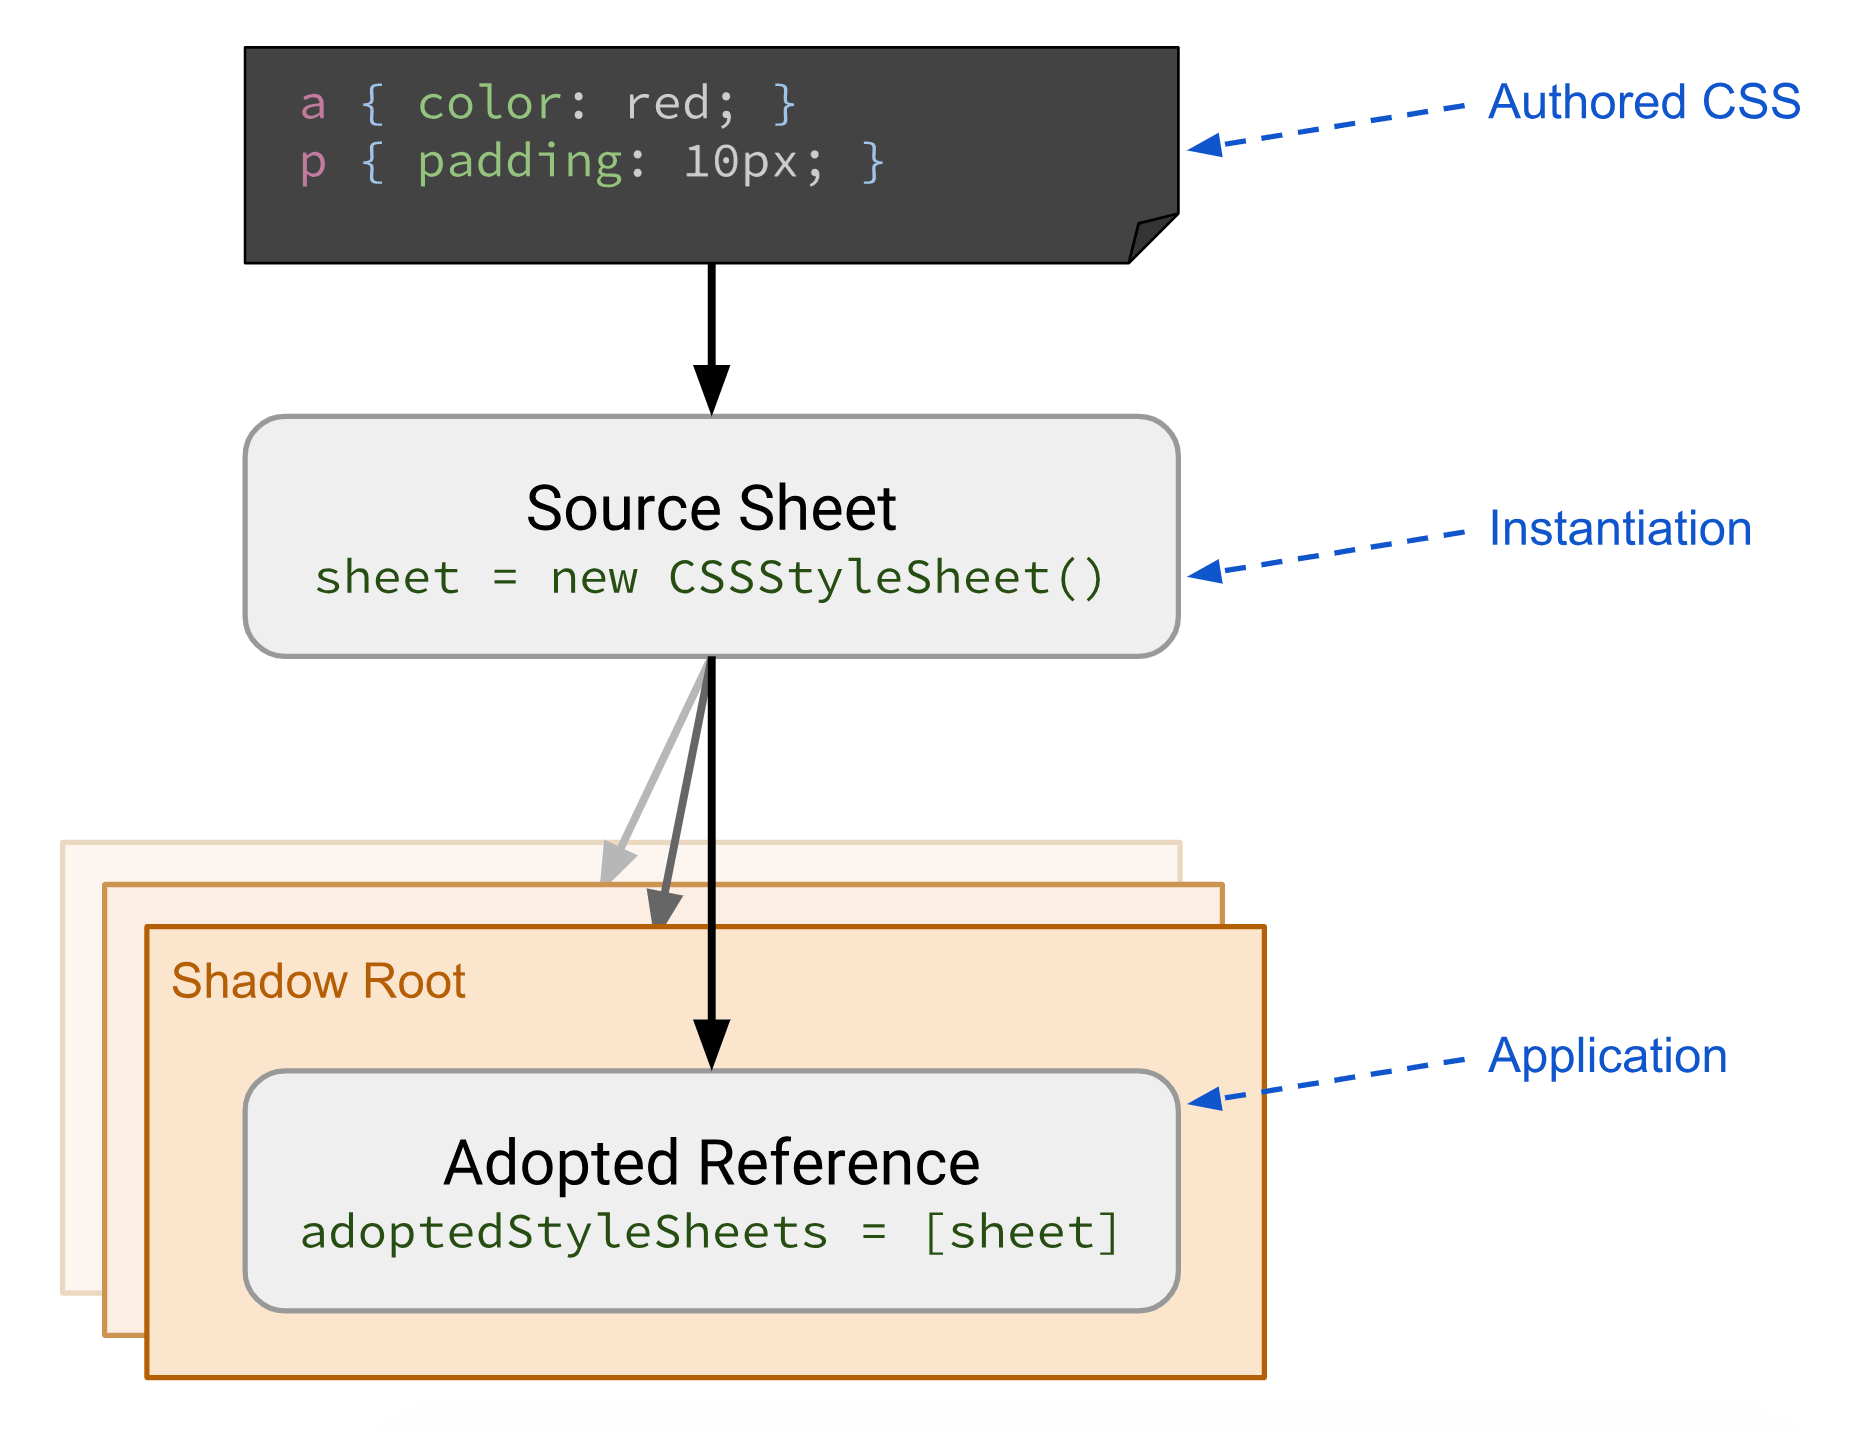 Diagram showing preparation and application of CSS